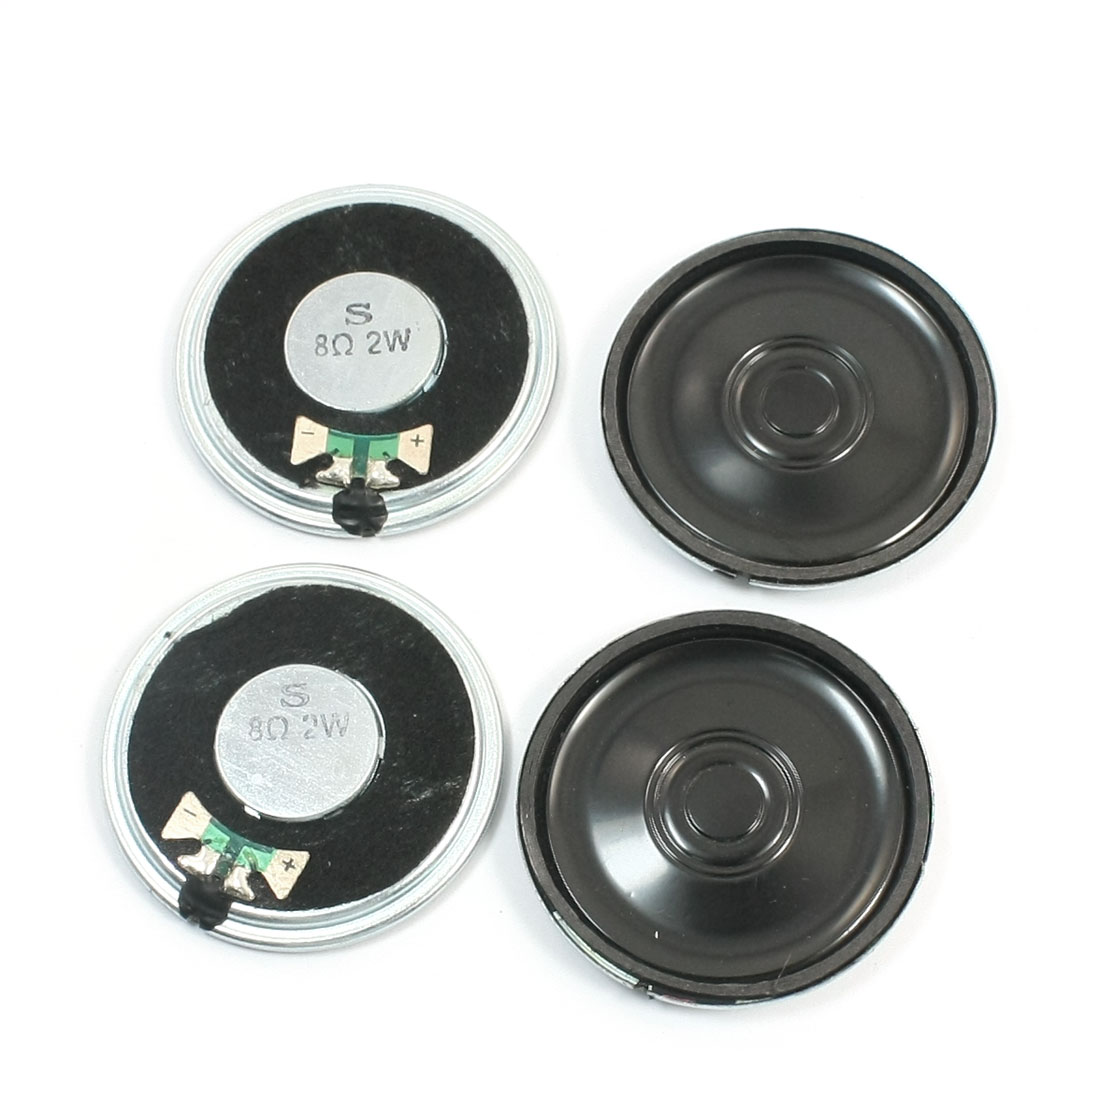 4 Pcs 40mm Round Metal Case Inside Magnet Speaker Loudspeaker Amplifier Replacement 8 Ohm 2W for DVD EVD Music Player